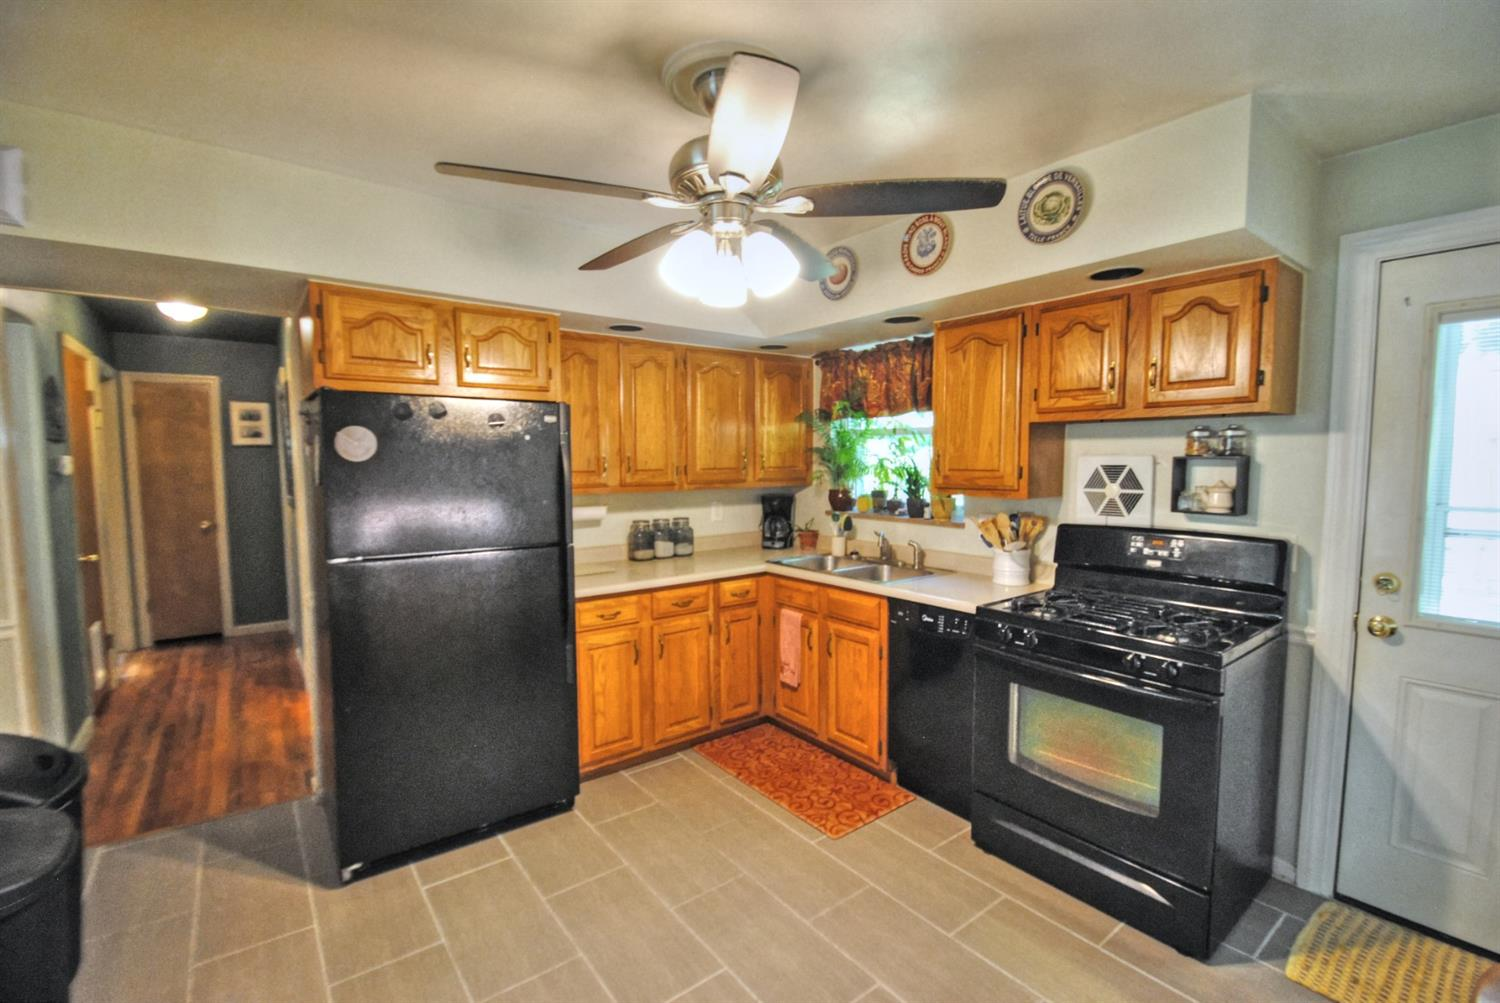 Photo 3 for 737 Wilbud Dr Price Hill, OH 45205